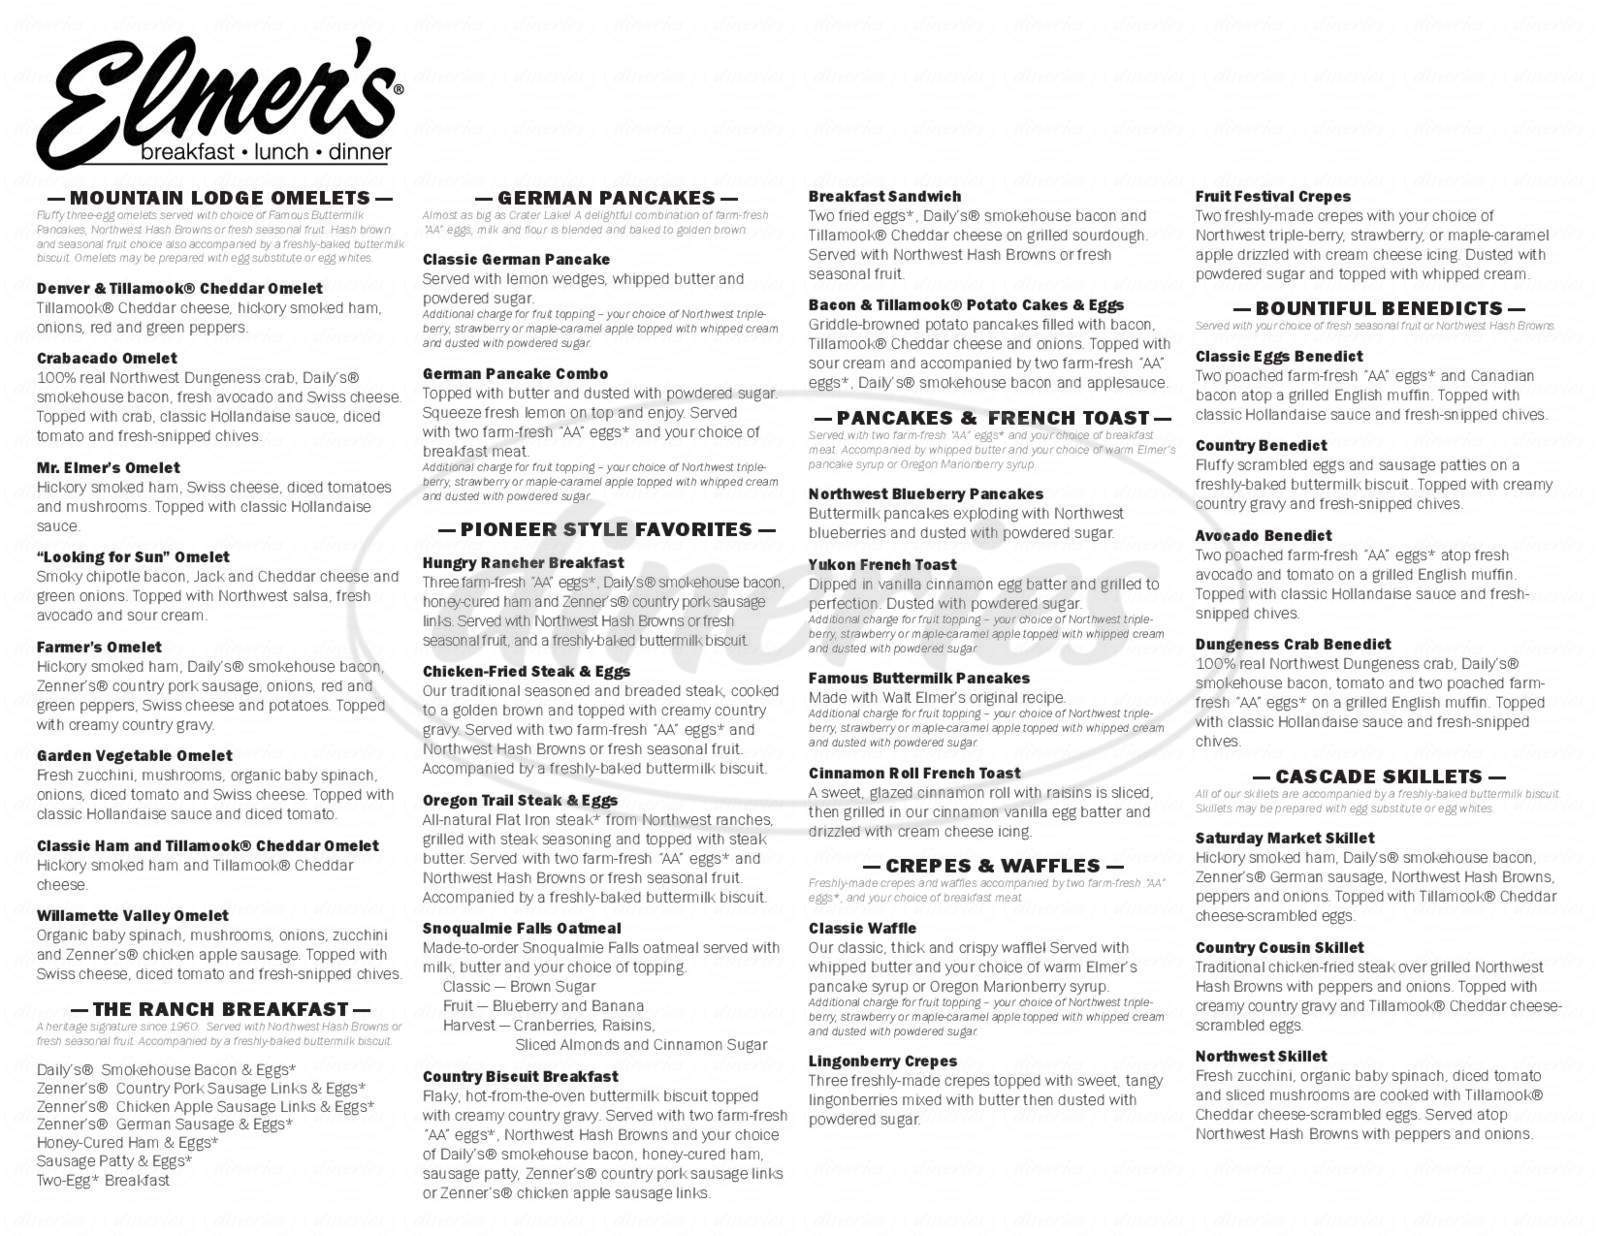 menu for Elmer's Restaurant